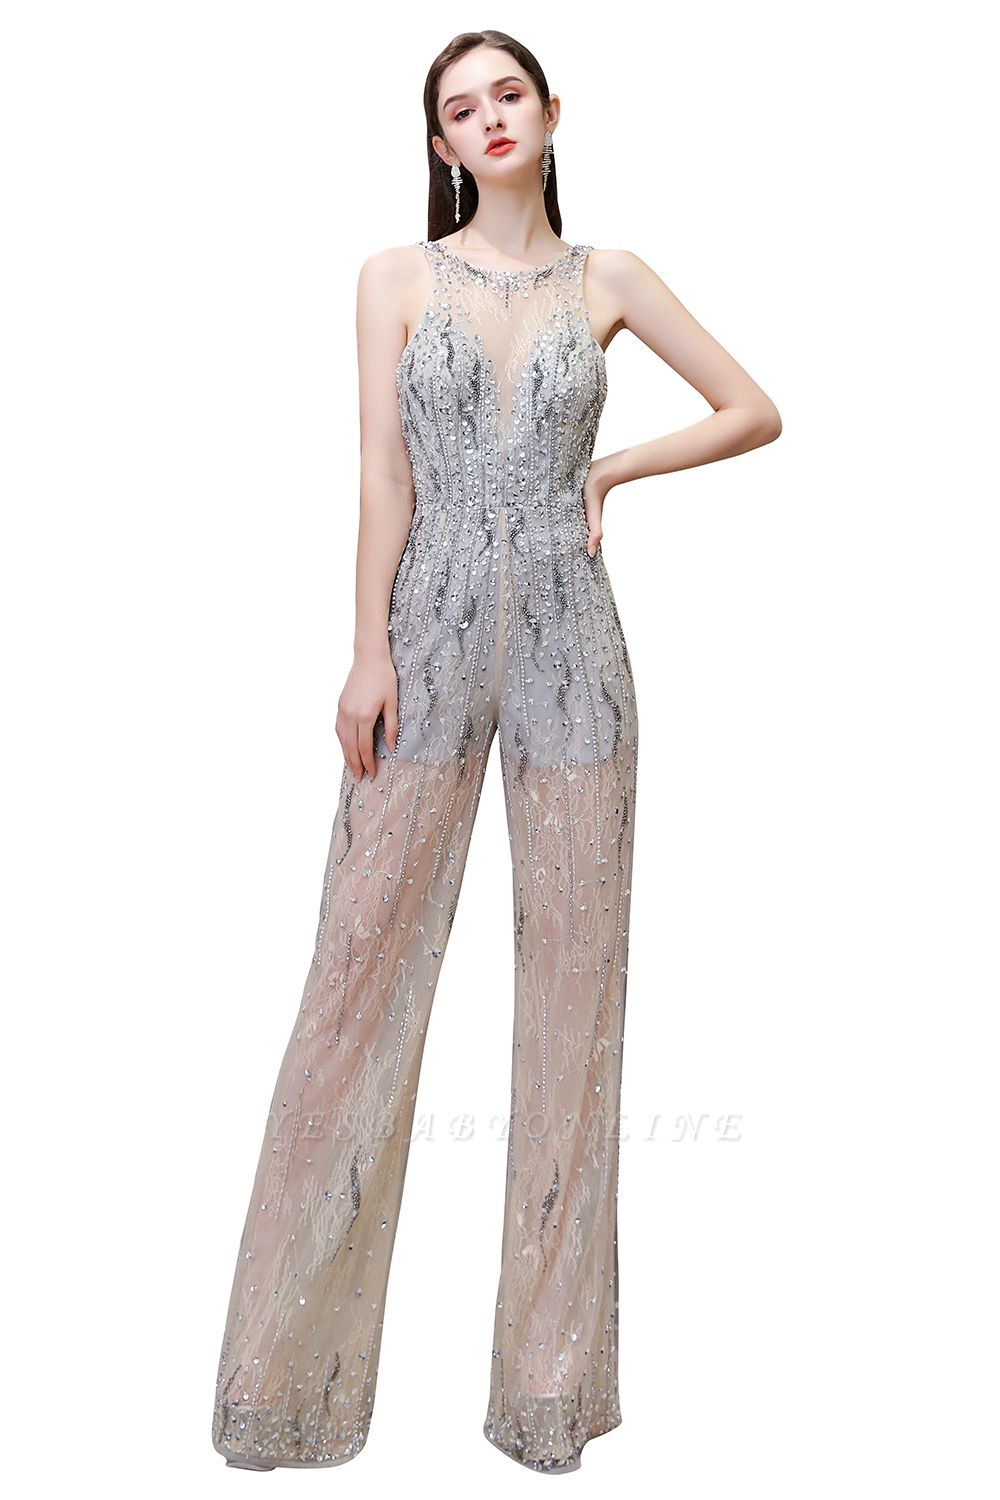 Round Neck Sleeveless Open Back Beaded Sparkly Prom Jumpsuit